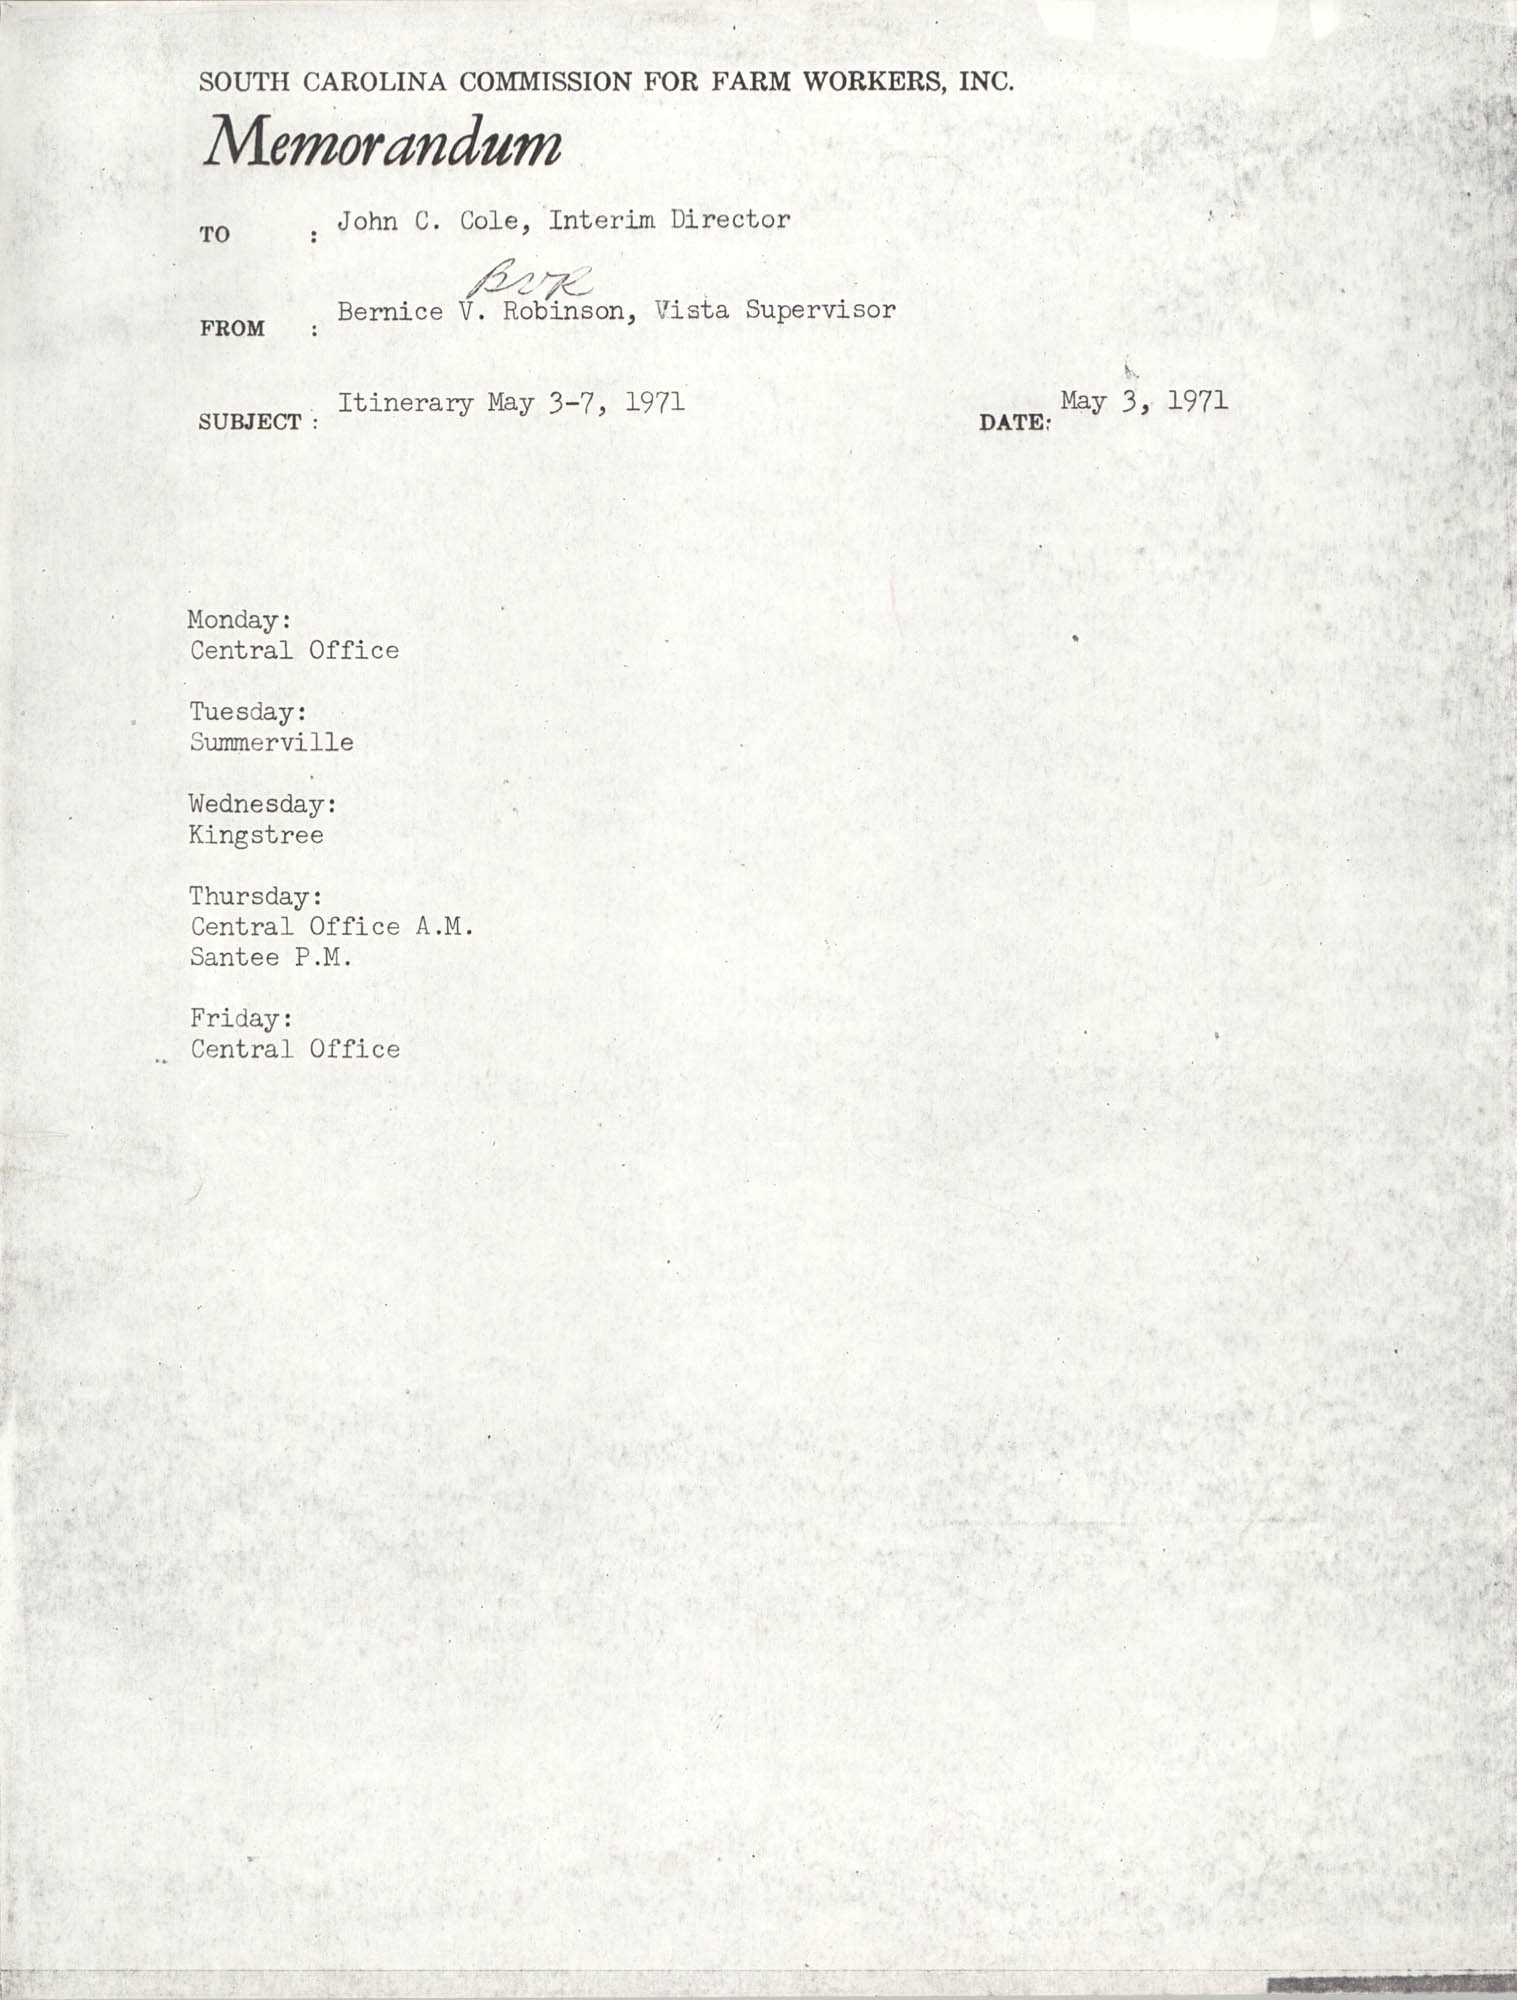 Memorandum from Bernice V. Robinson to John Cole, May 3, 1971